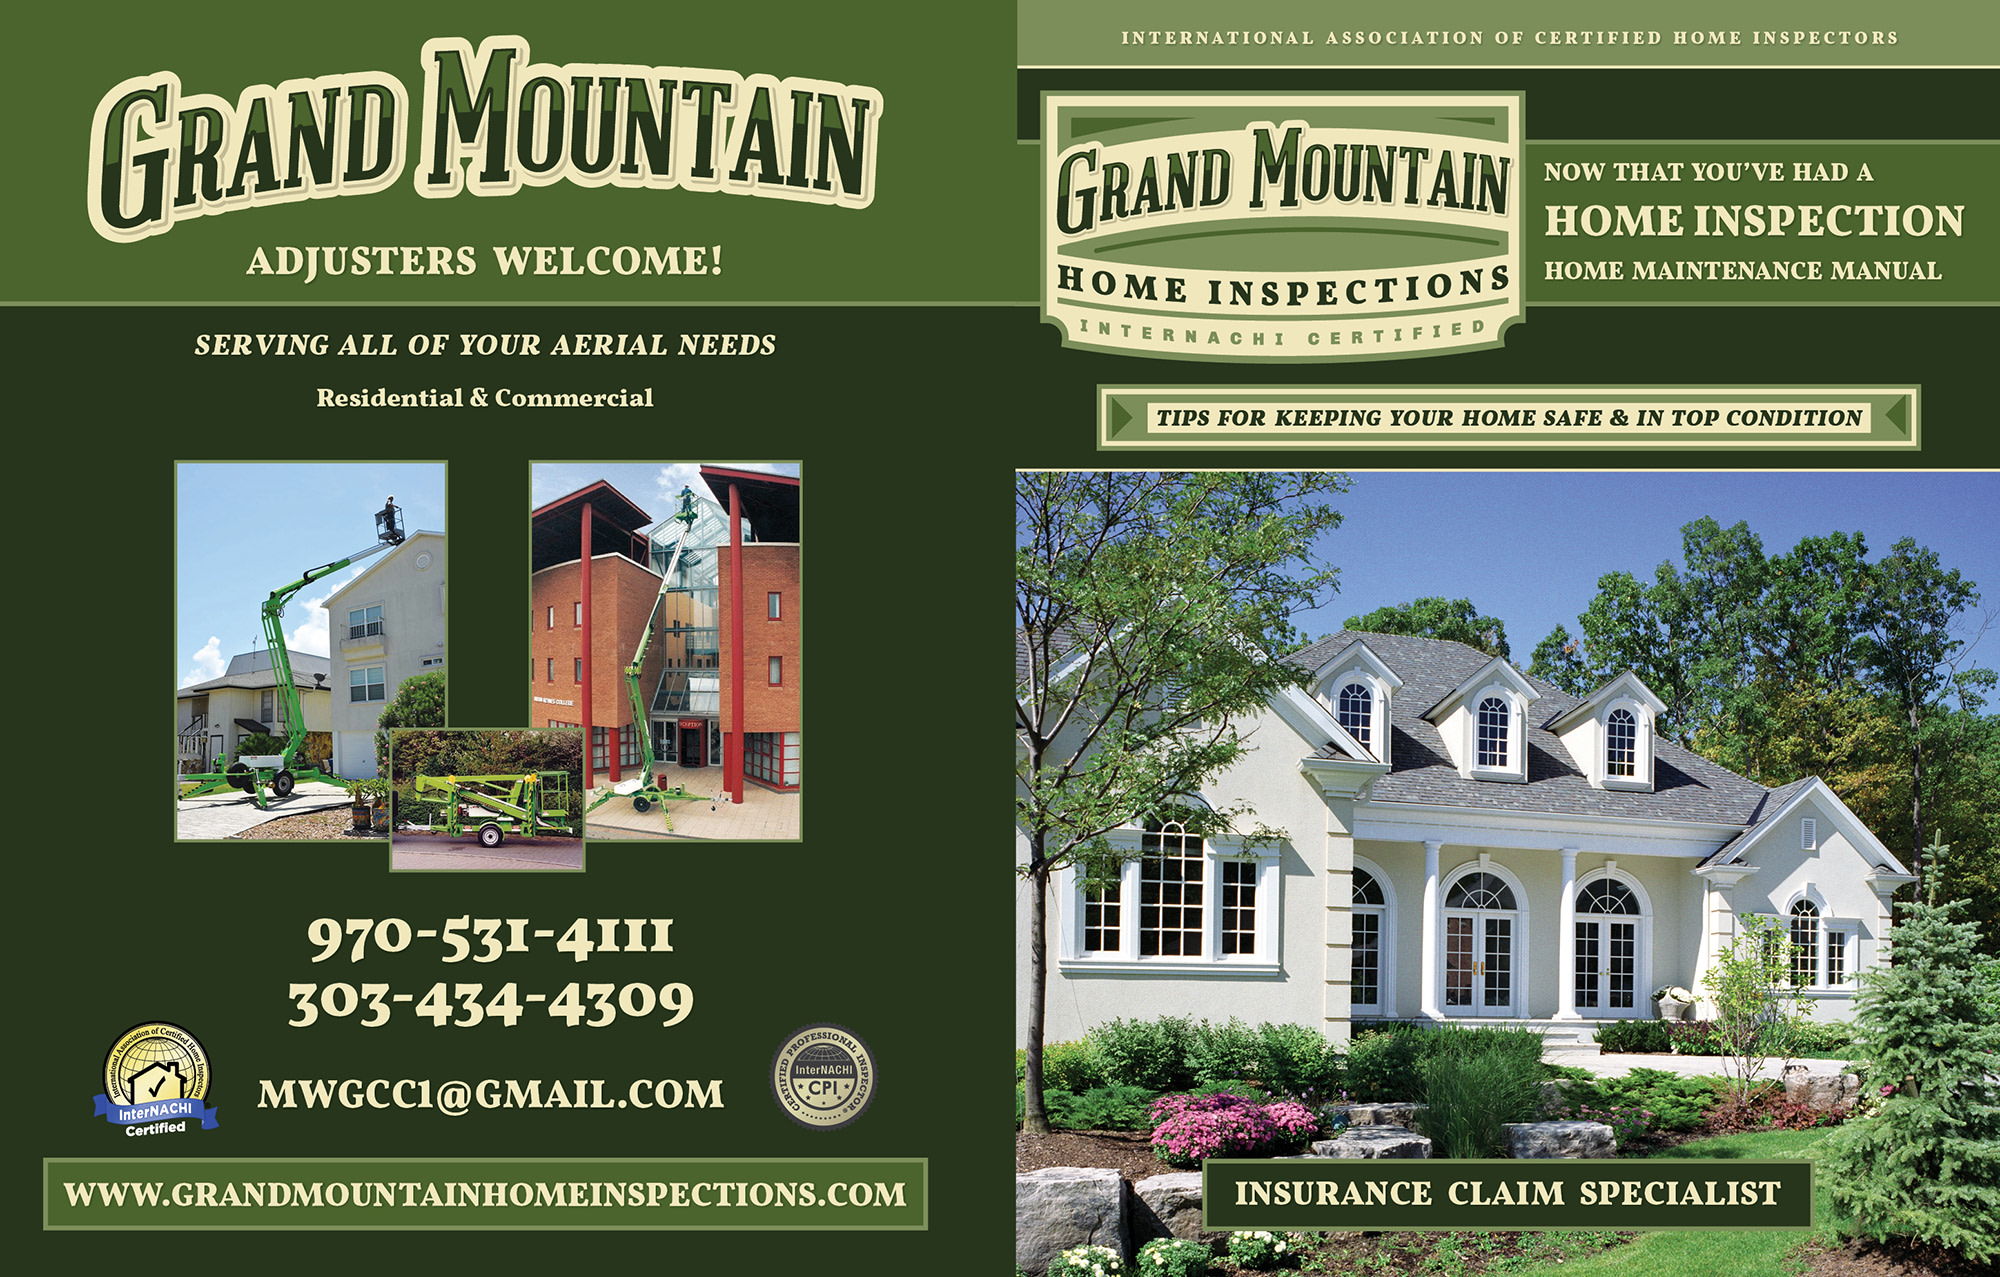 Custom Home Maintenance Book for Green Mountain Home Inspections.